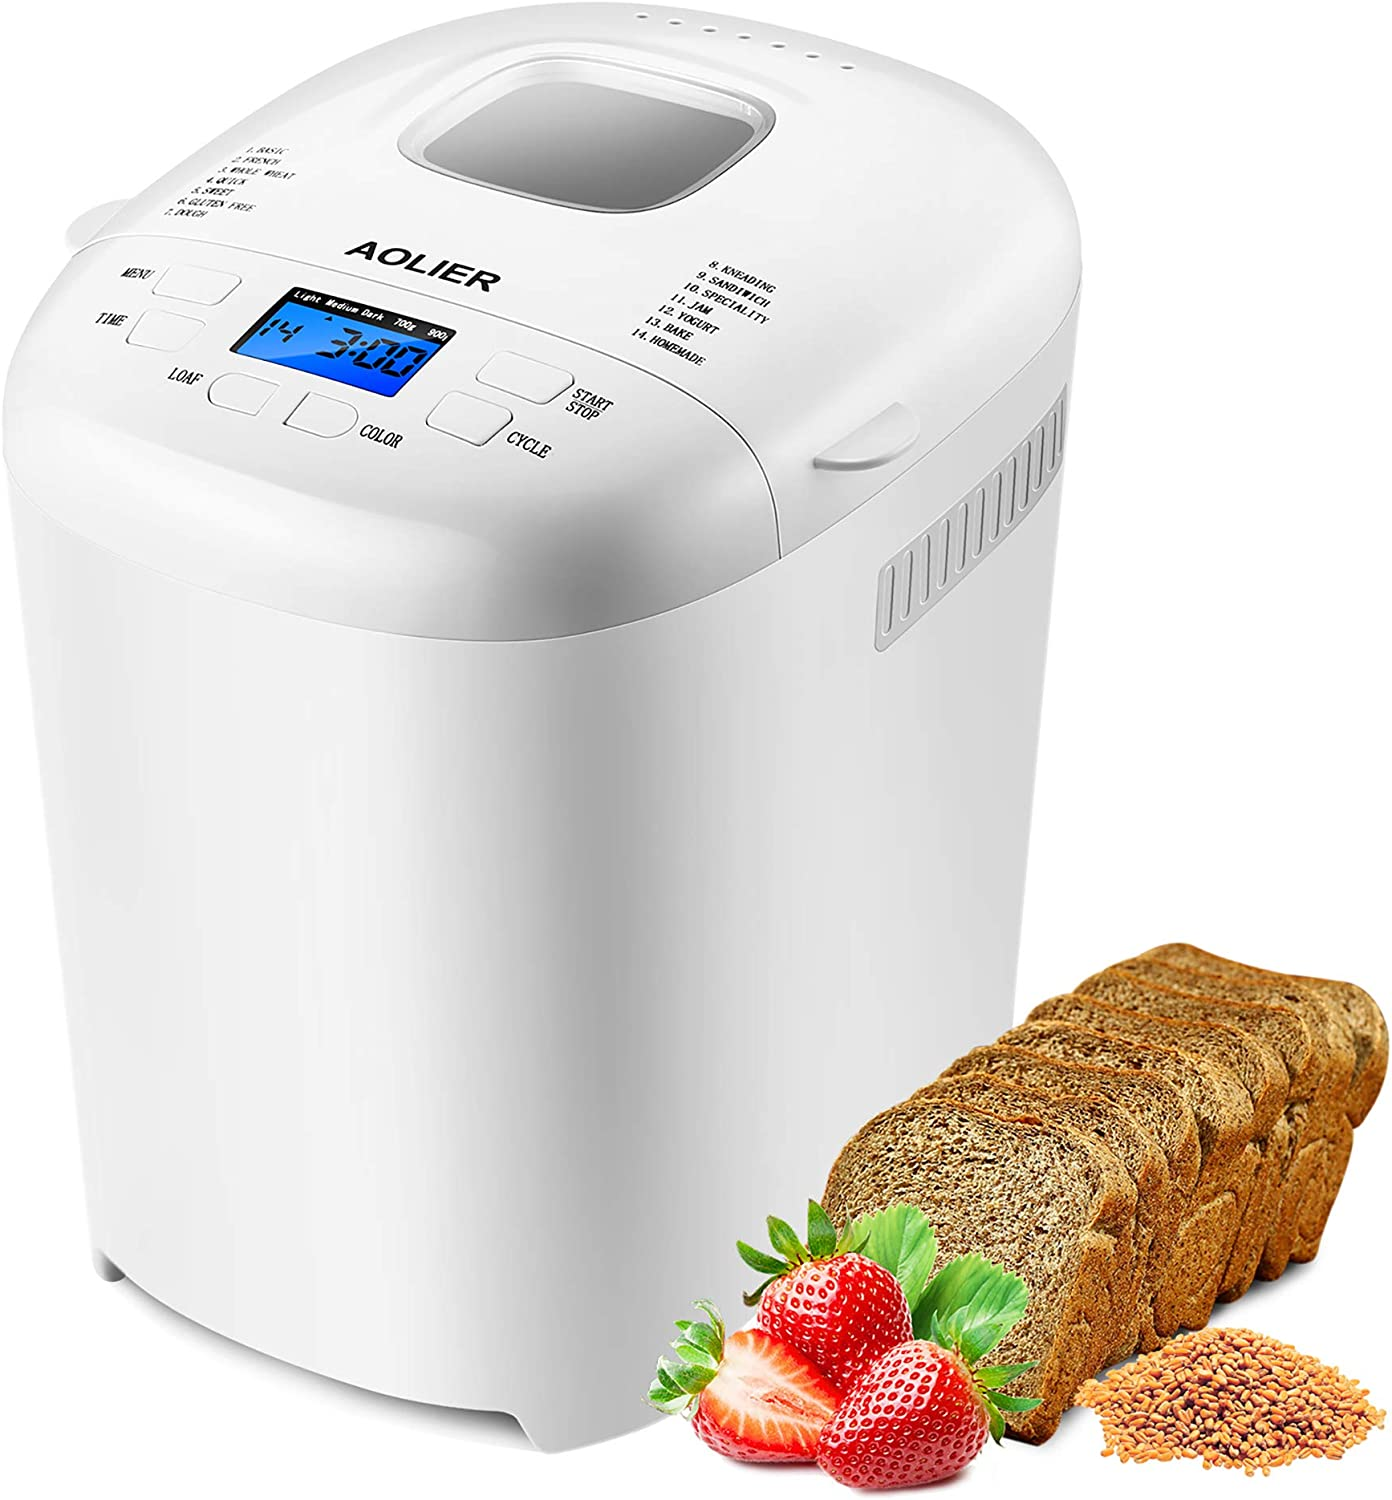 AOLIER Bread Machine, 2LB 14-in-1 Bread Maker Machine Incl Gluten Free, Homemade Setting | Non Stick Pan | 2 Loaf Sizes & 3 Crust Colors | Reserve & Keep Warm Set | Recipe Booklet Included (White)